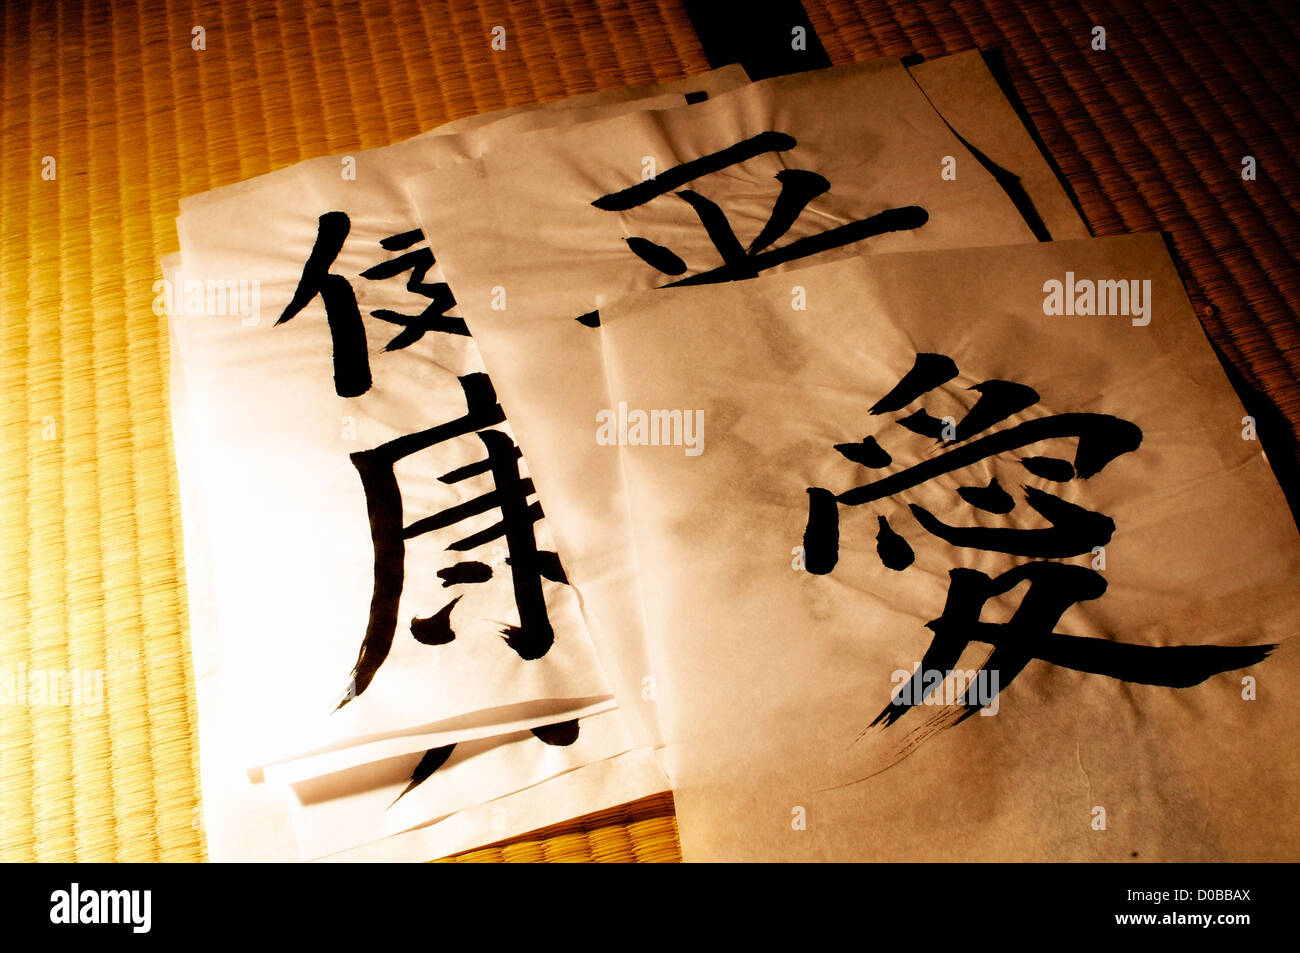 Japanese words, written in artistic calligraphy on a Tatami